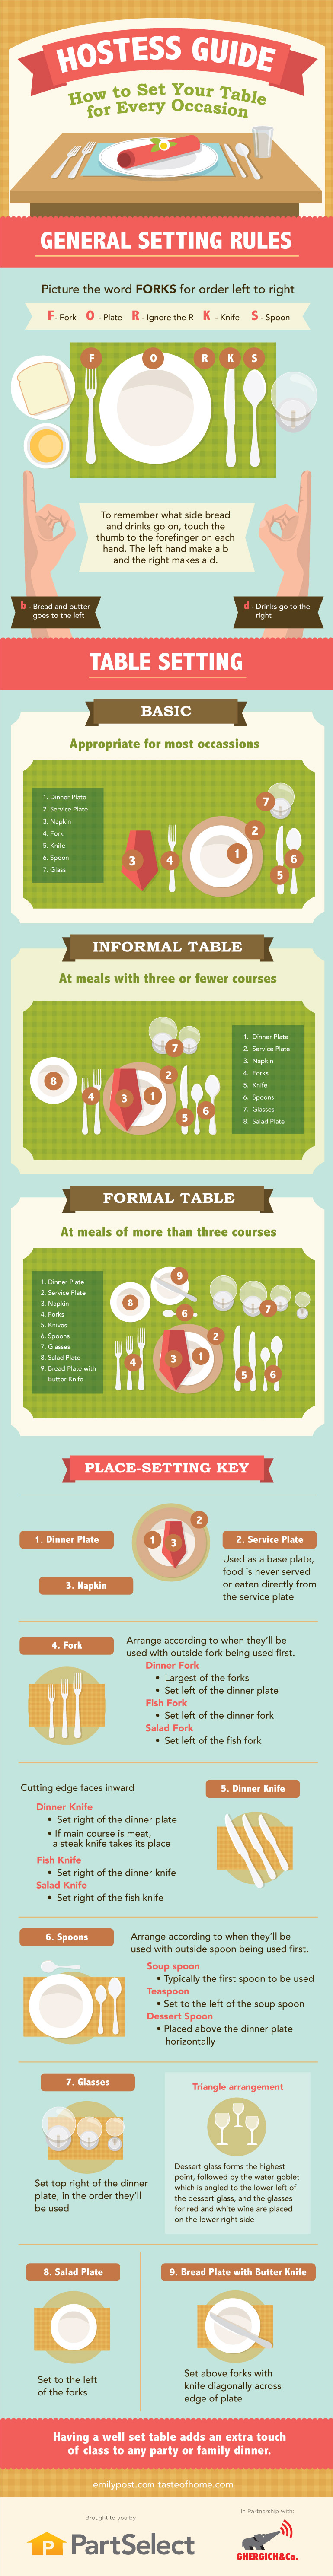 Different Occasions Demand Different Table Settings - Infographic